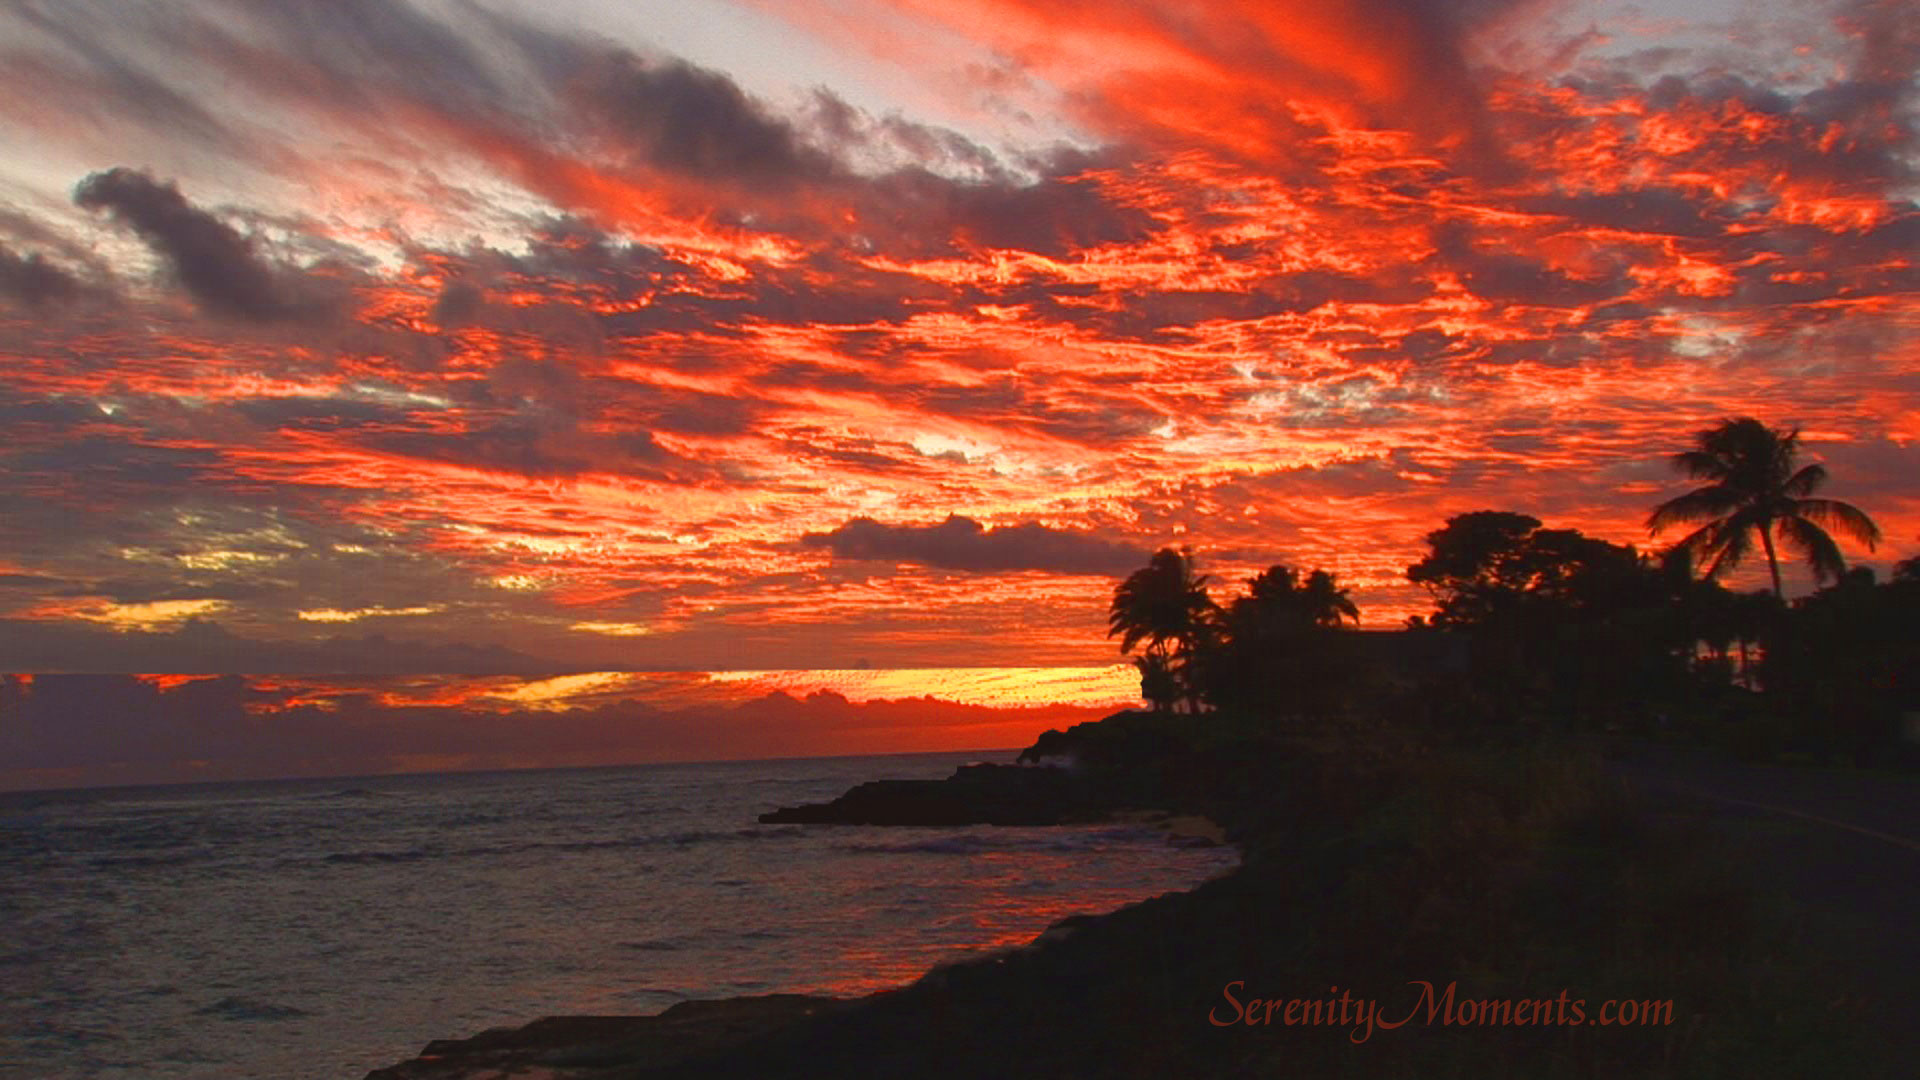 Poipou Sunset Kauai Screensaver 1920x1080